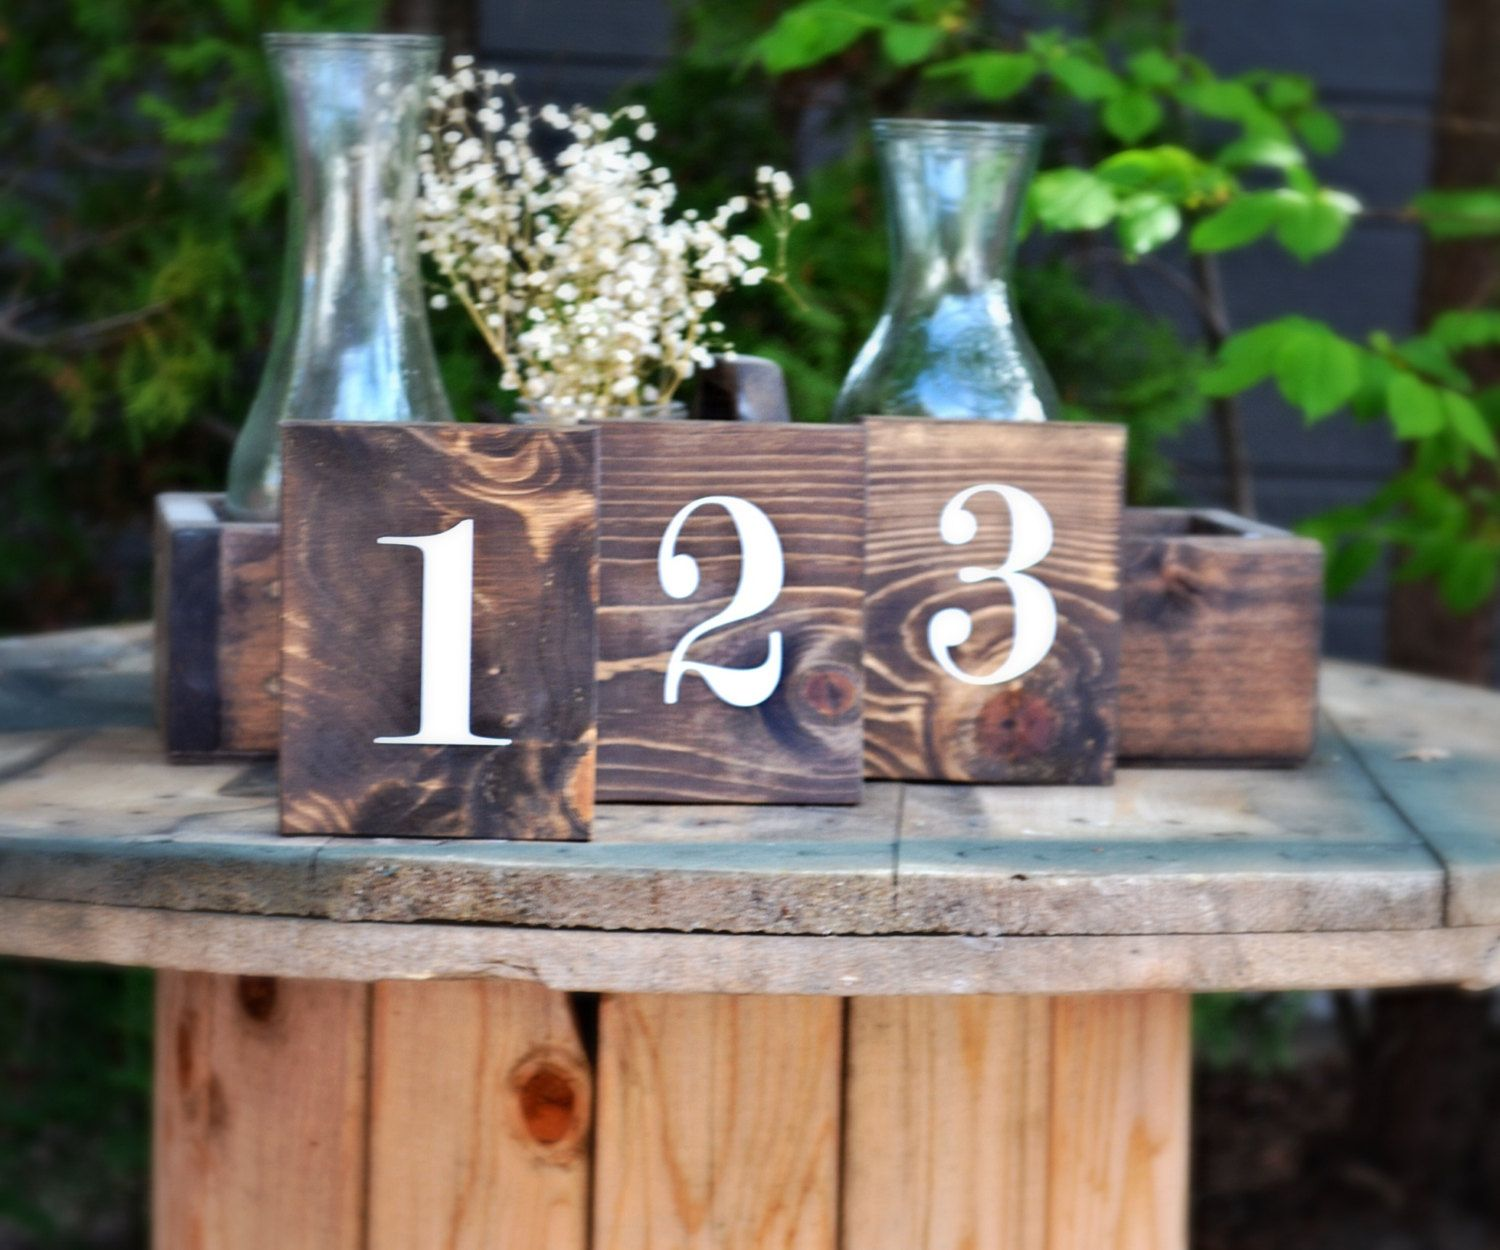 Rustic Table Numbers Set of 15, rustic wedding, country wedding, barnwoodwedding, fall wedding, rustic table decor, rustic wood by MintageDesigns on Etsy